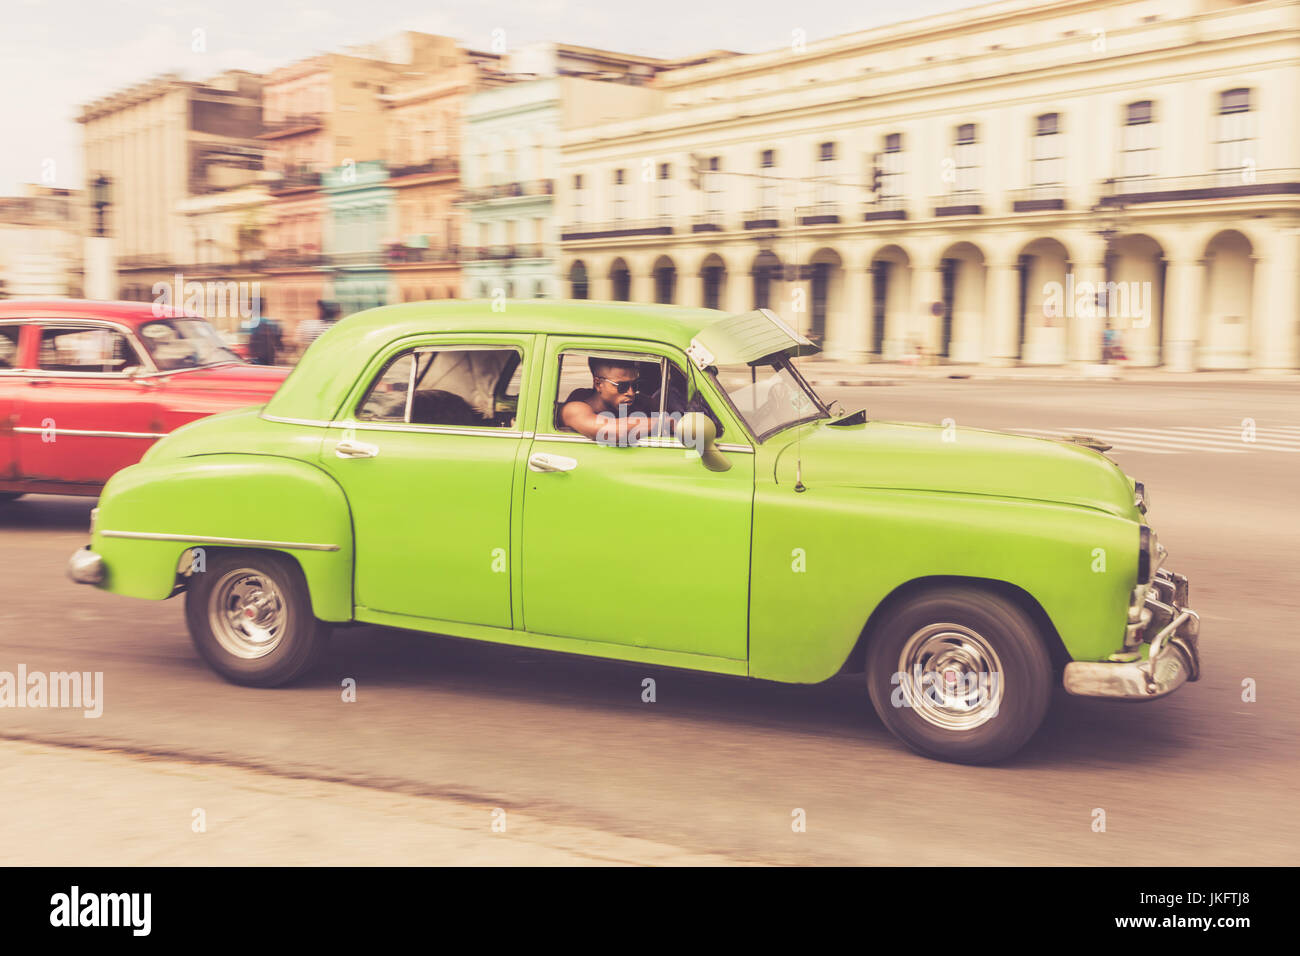 green-american-classic-car-with-young-cubans-driving-in-old-havana-JKFTJ8.jpg